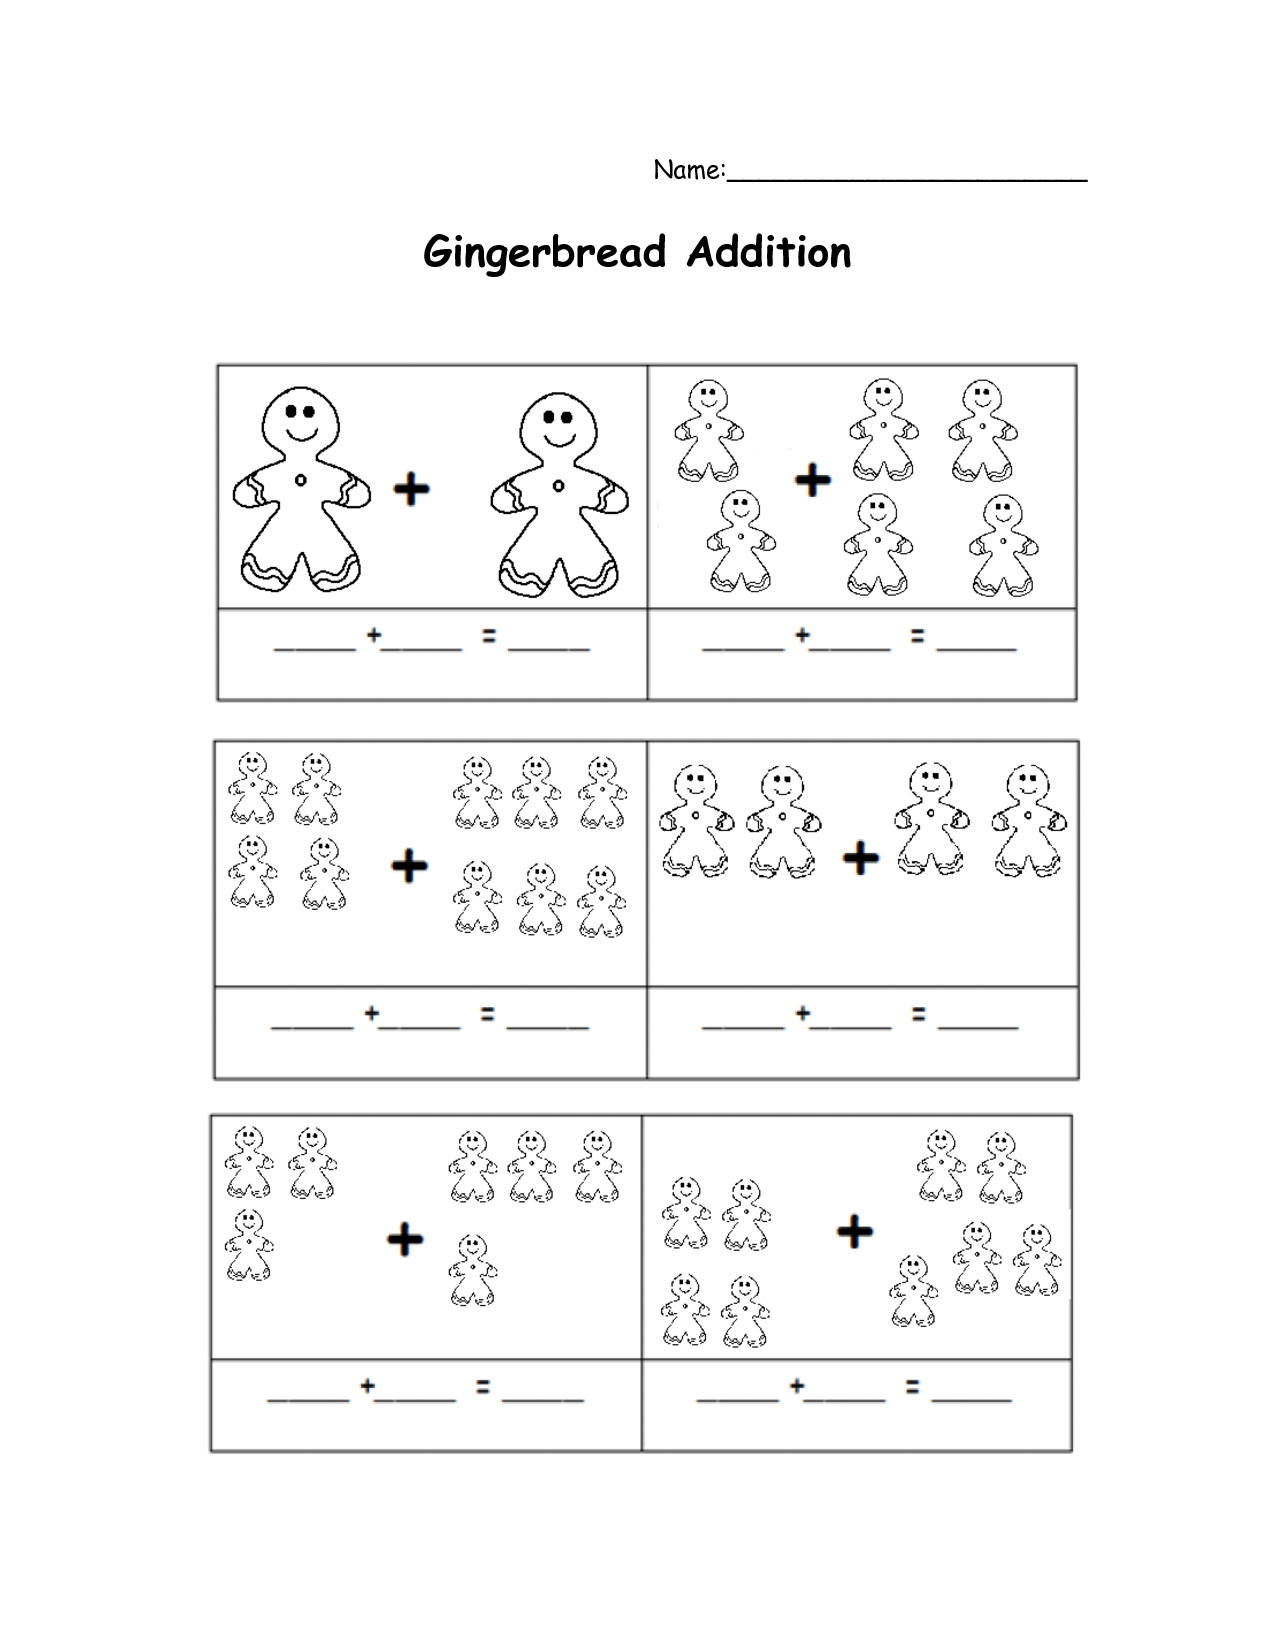 Gingerbread Math Worksheets